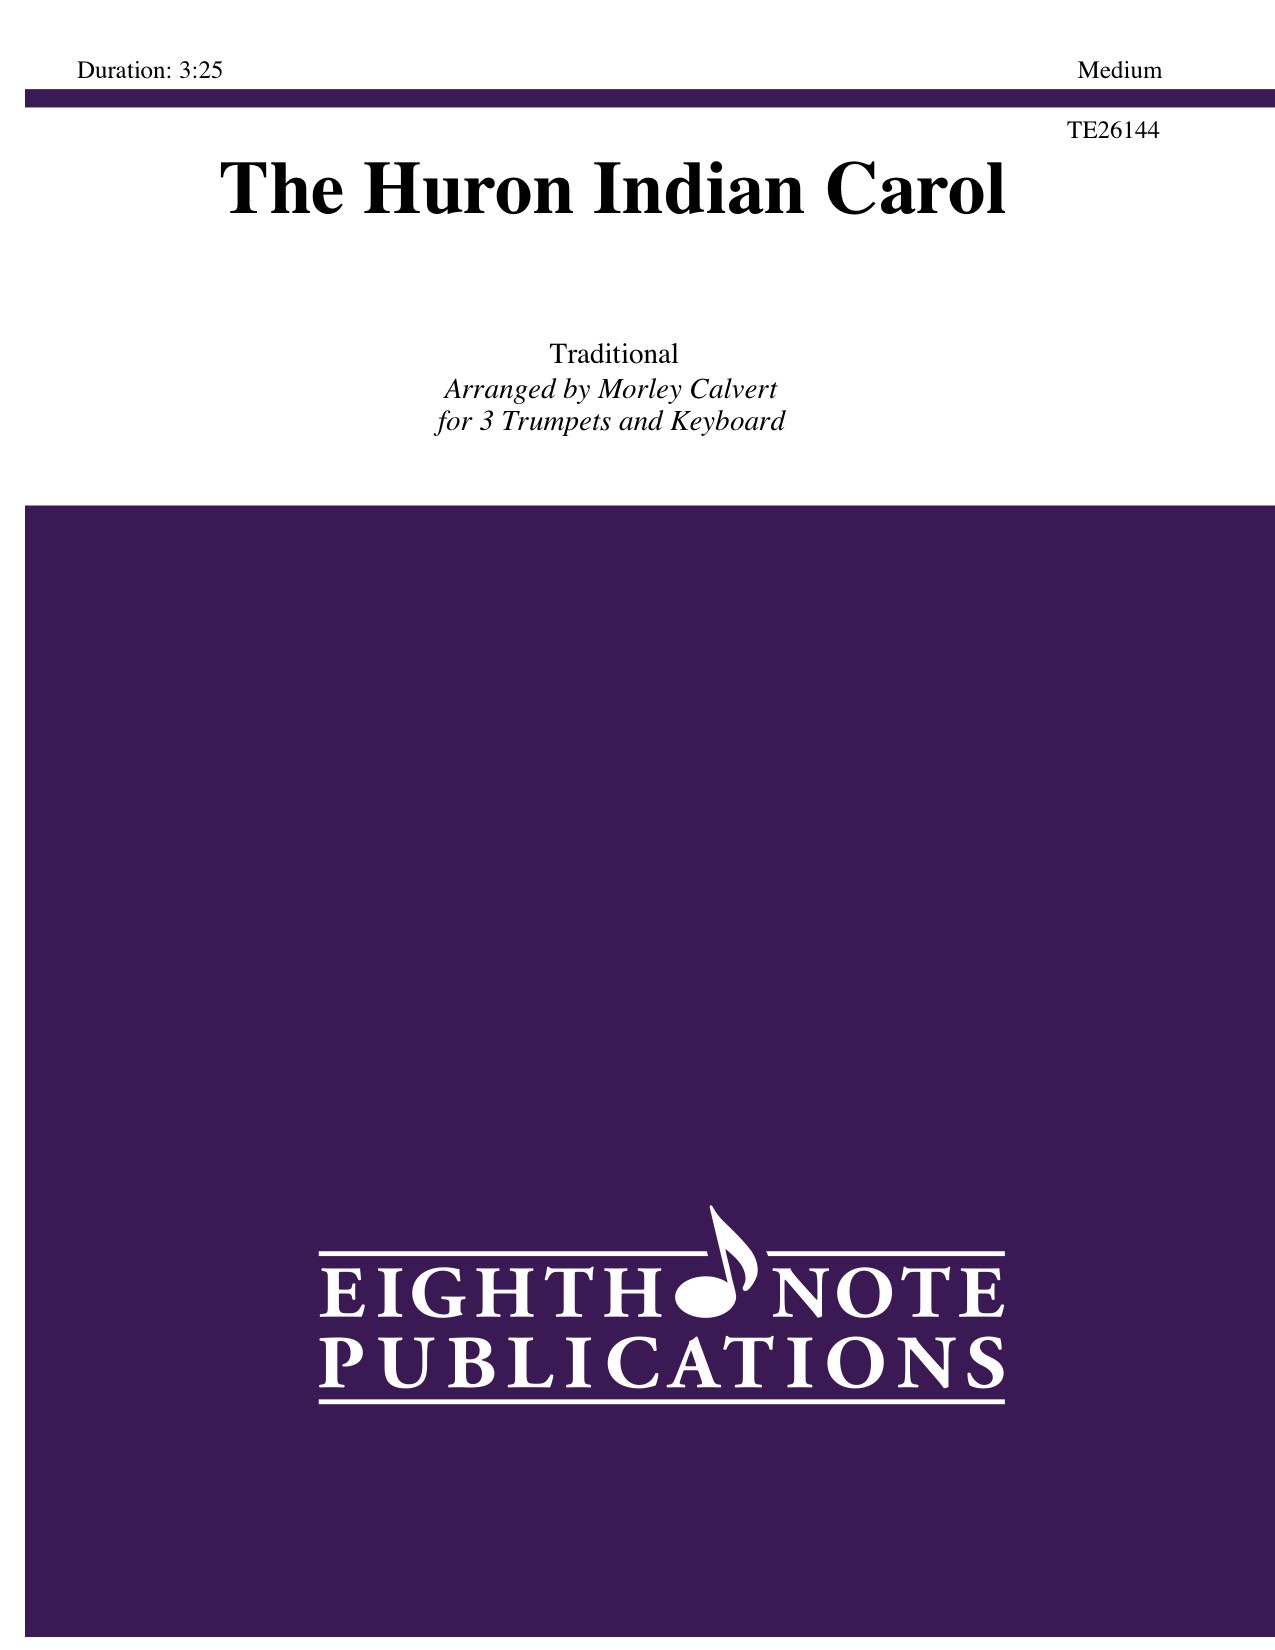 Huron Indian Carol, The -  Traditional